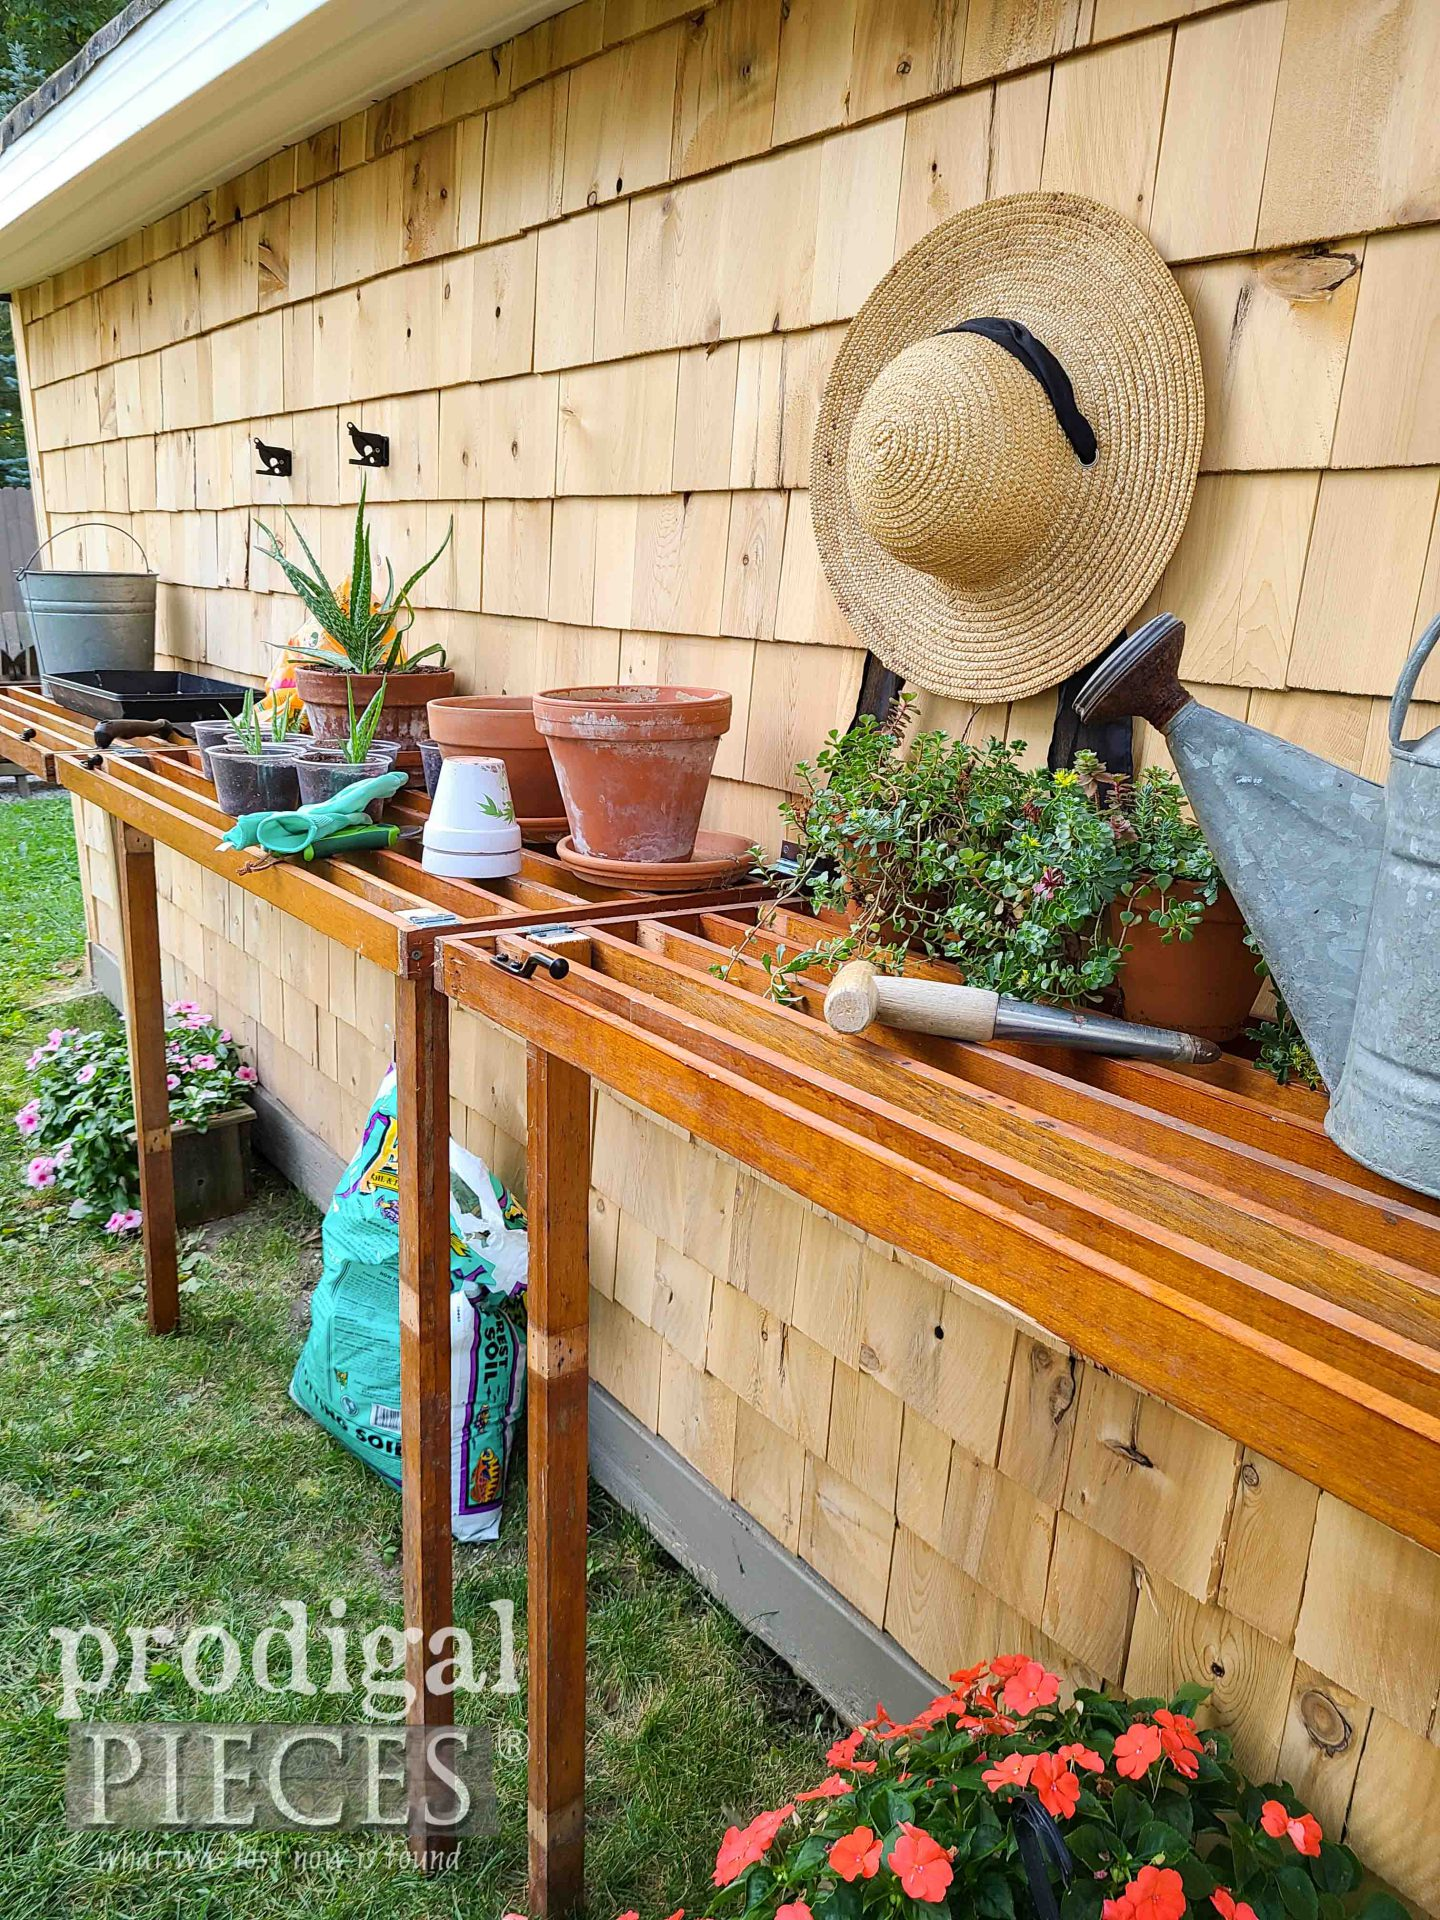 DIY Garden Potting Bench from Reclaimed Shelving by Larissa of Prodigal Pieces | prodigalpieces.com #prodigalpieces #homesteading #diy #garden #selfsustaining